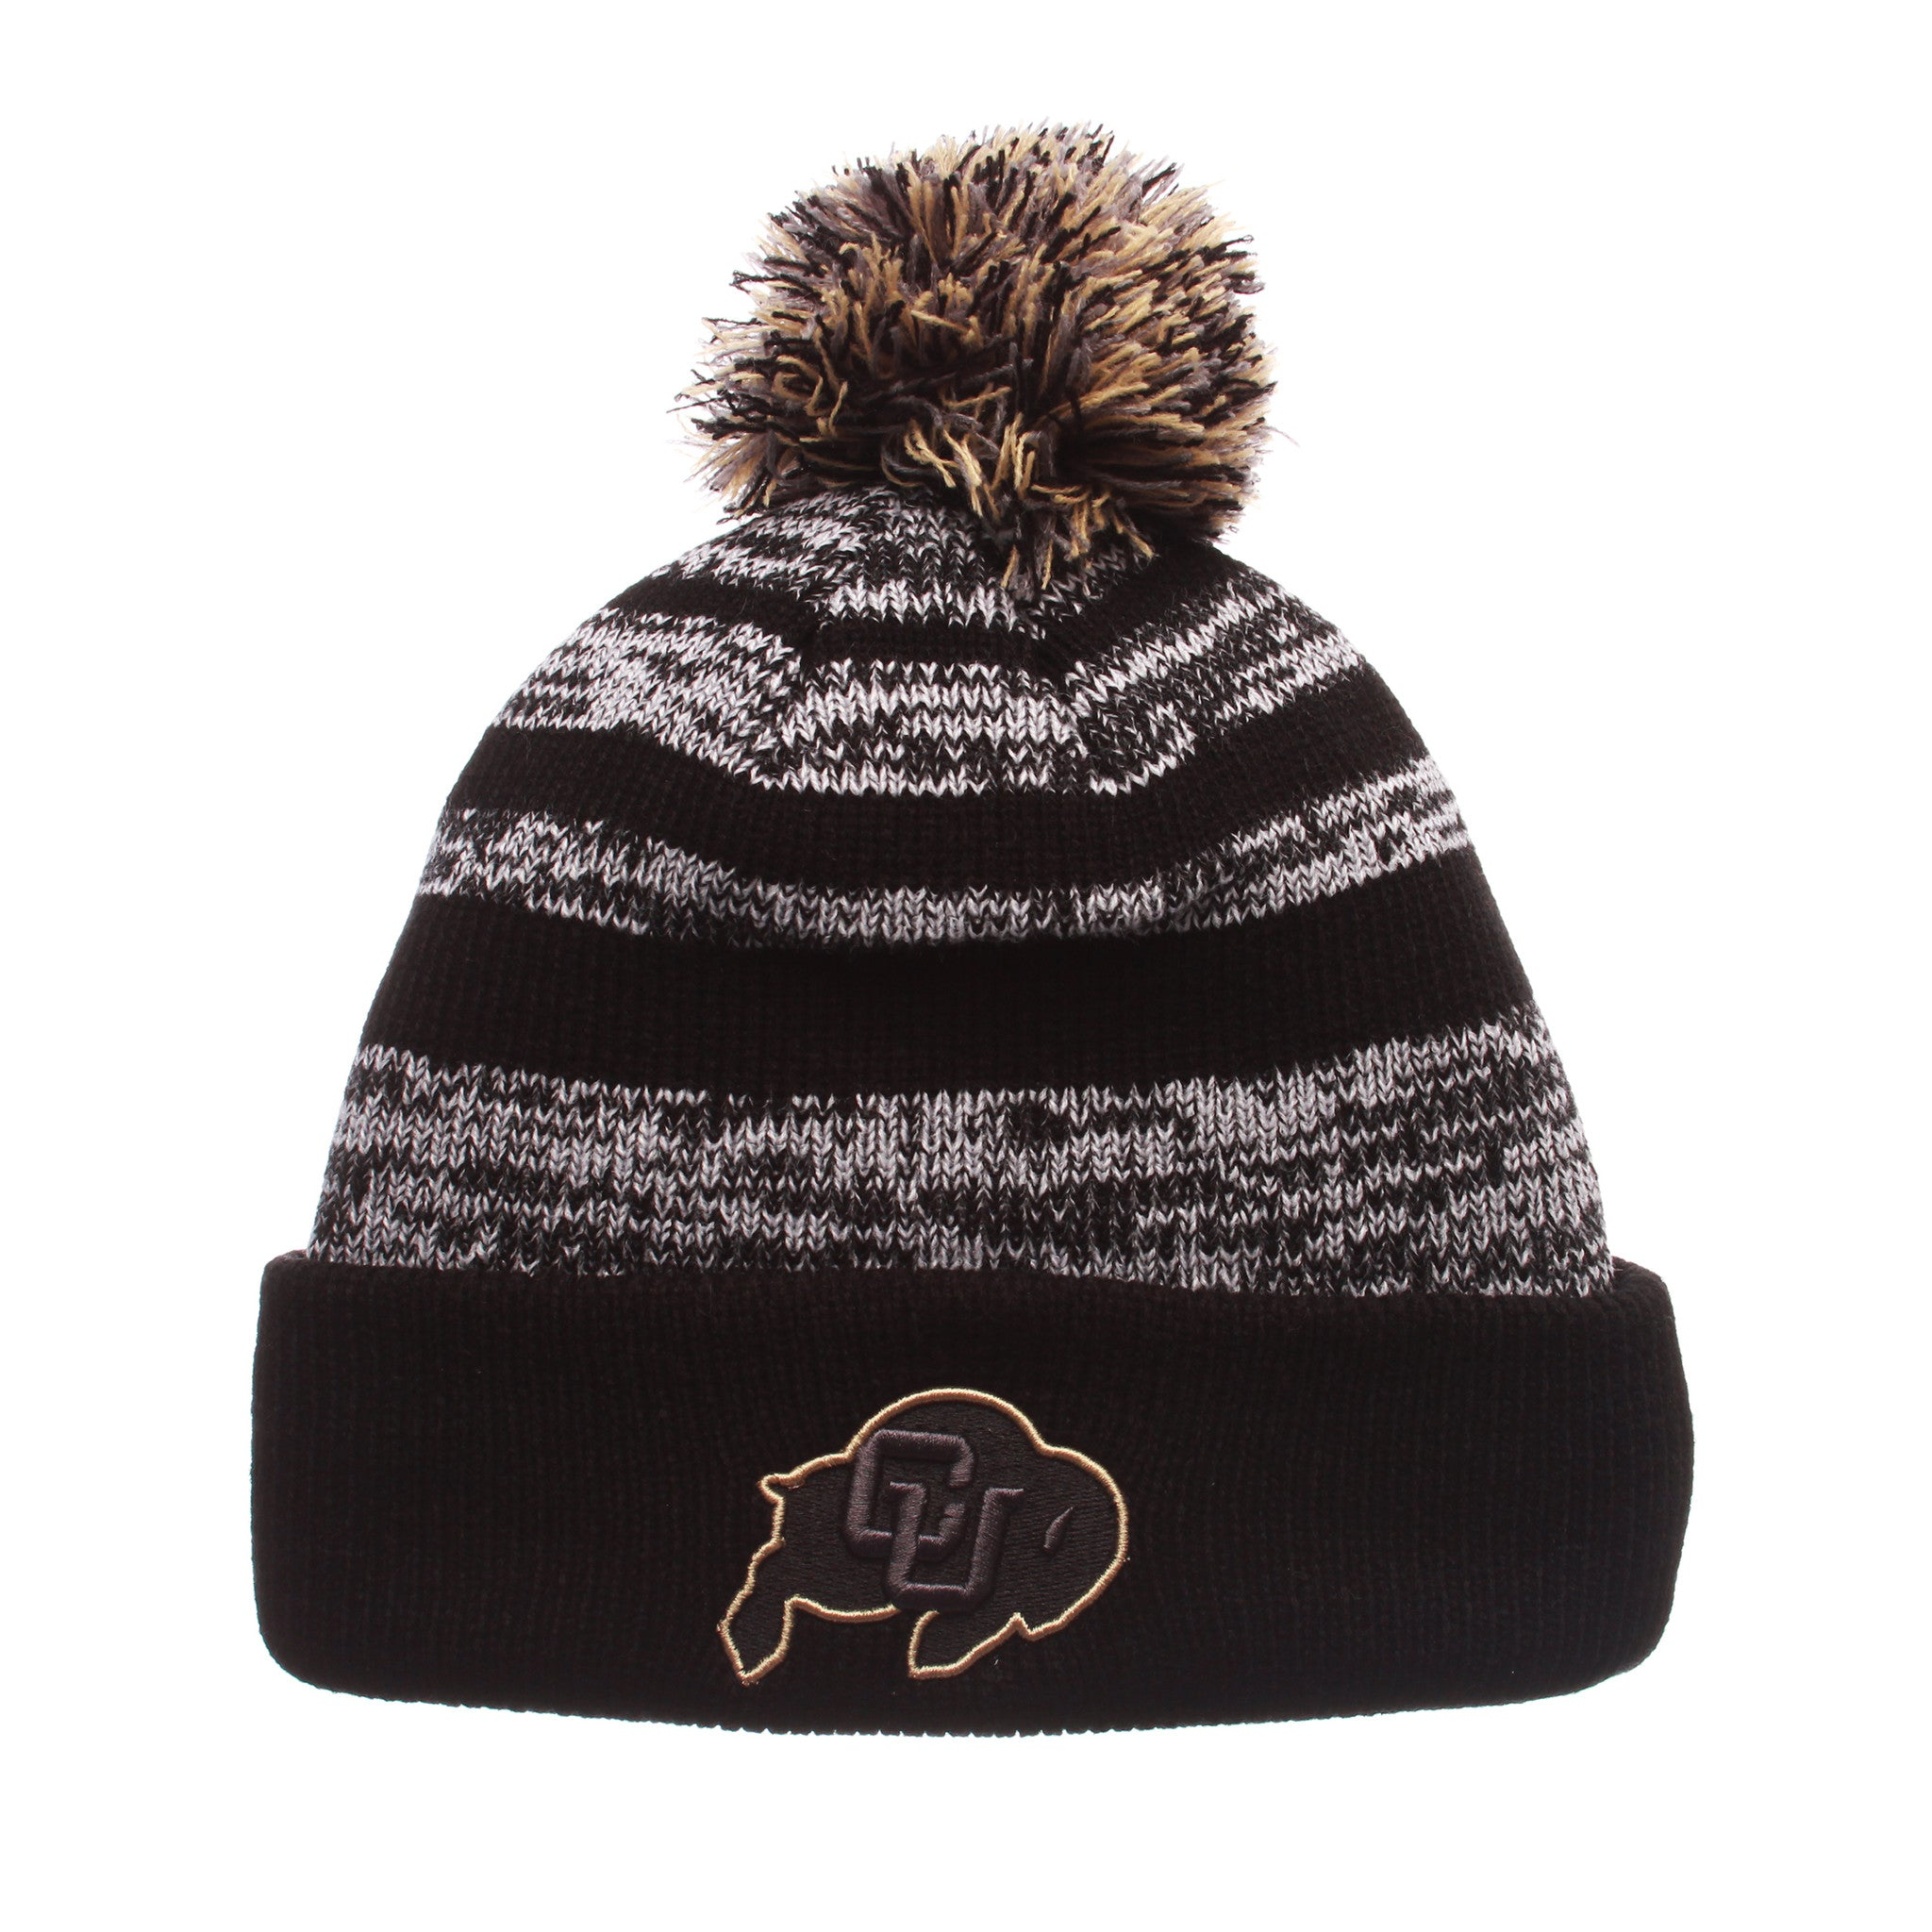 Colorado (Boulder) Black Baron Knit (Fold) (CU W/BUFFALO) Black/White/Gray Confederate Knit Adjustable hats by Zephyr